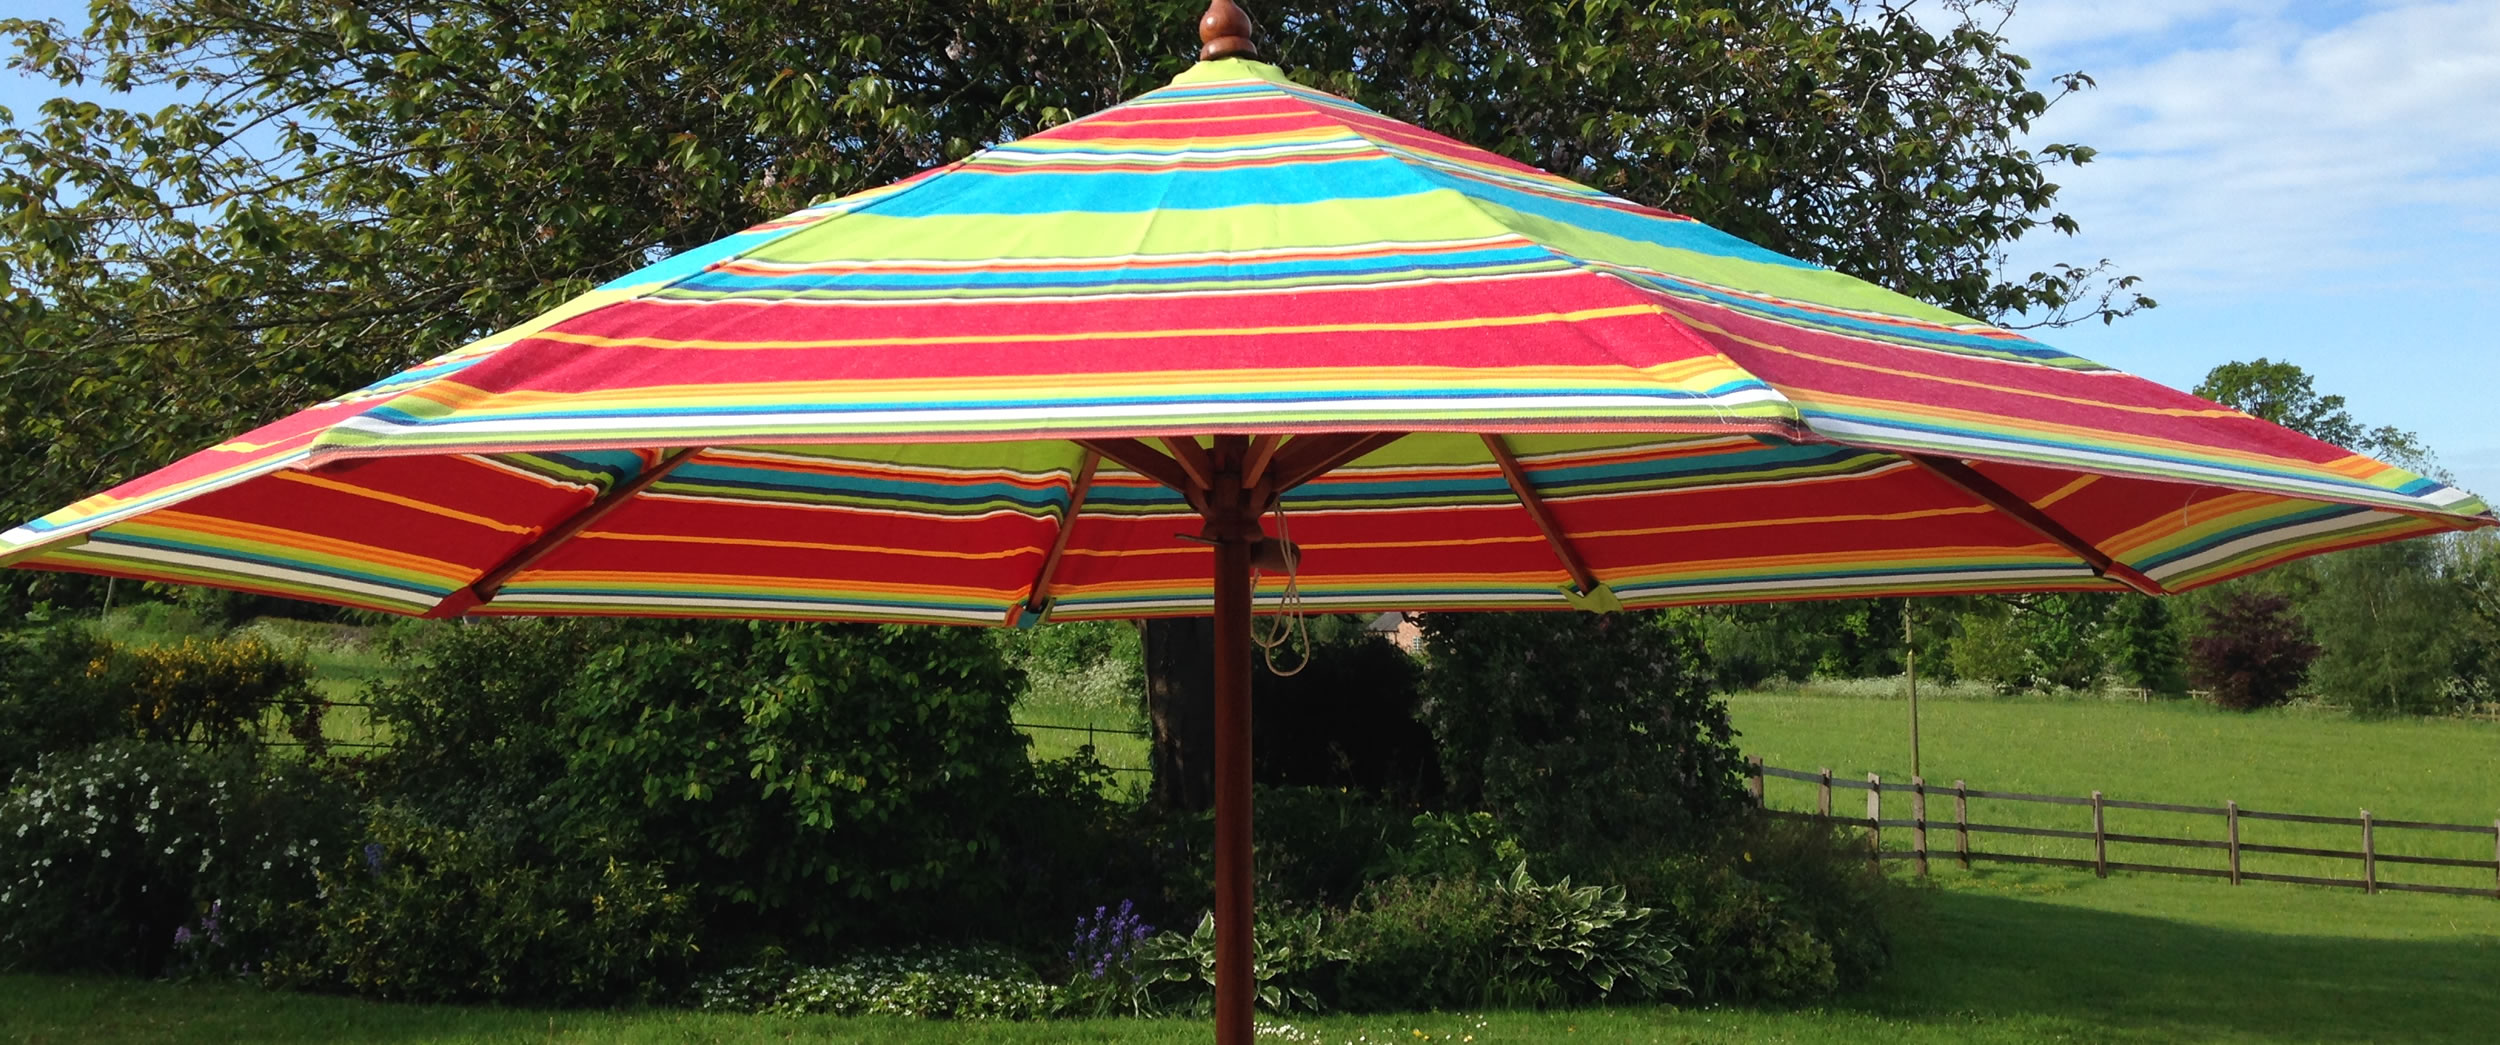 Parasol Striped Large Garden Parasols And Patio Umbrellas